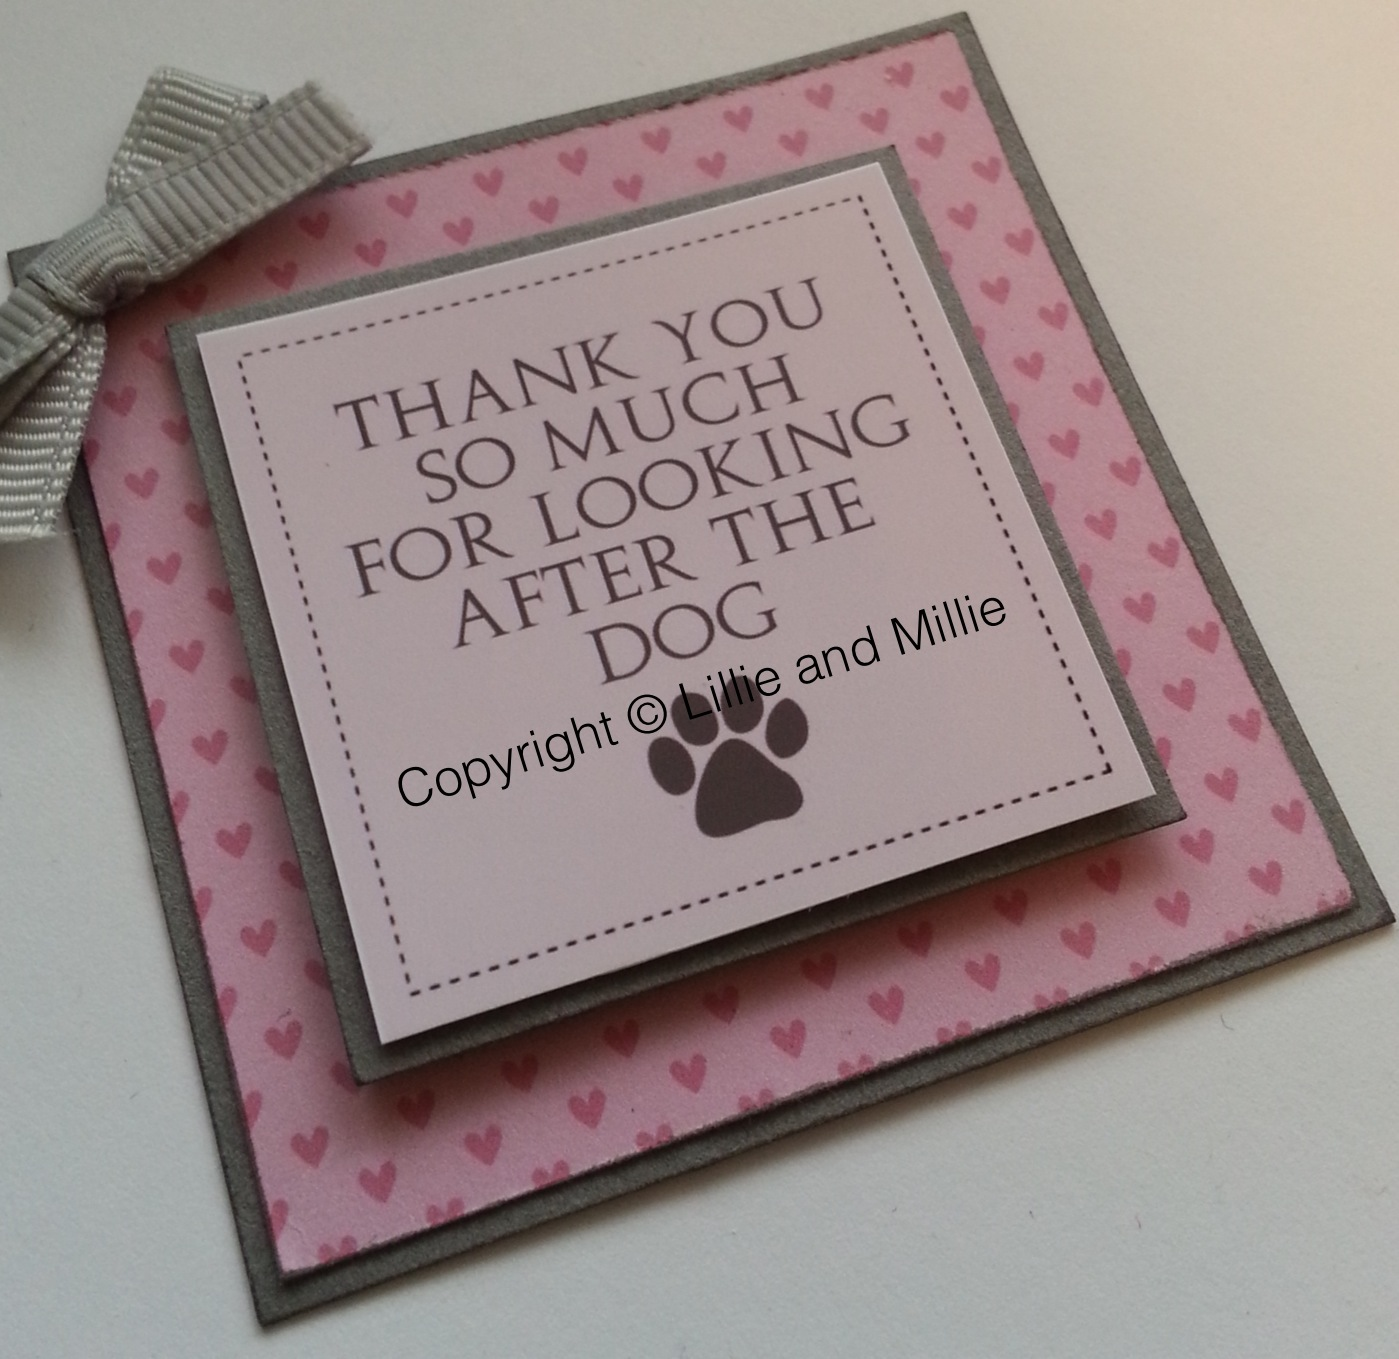 Thank You So Much for Looking After the Dog Card